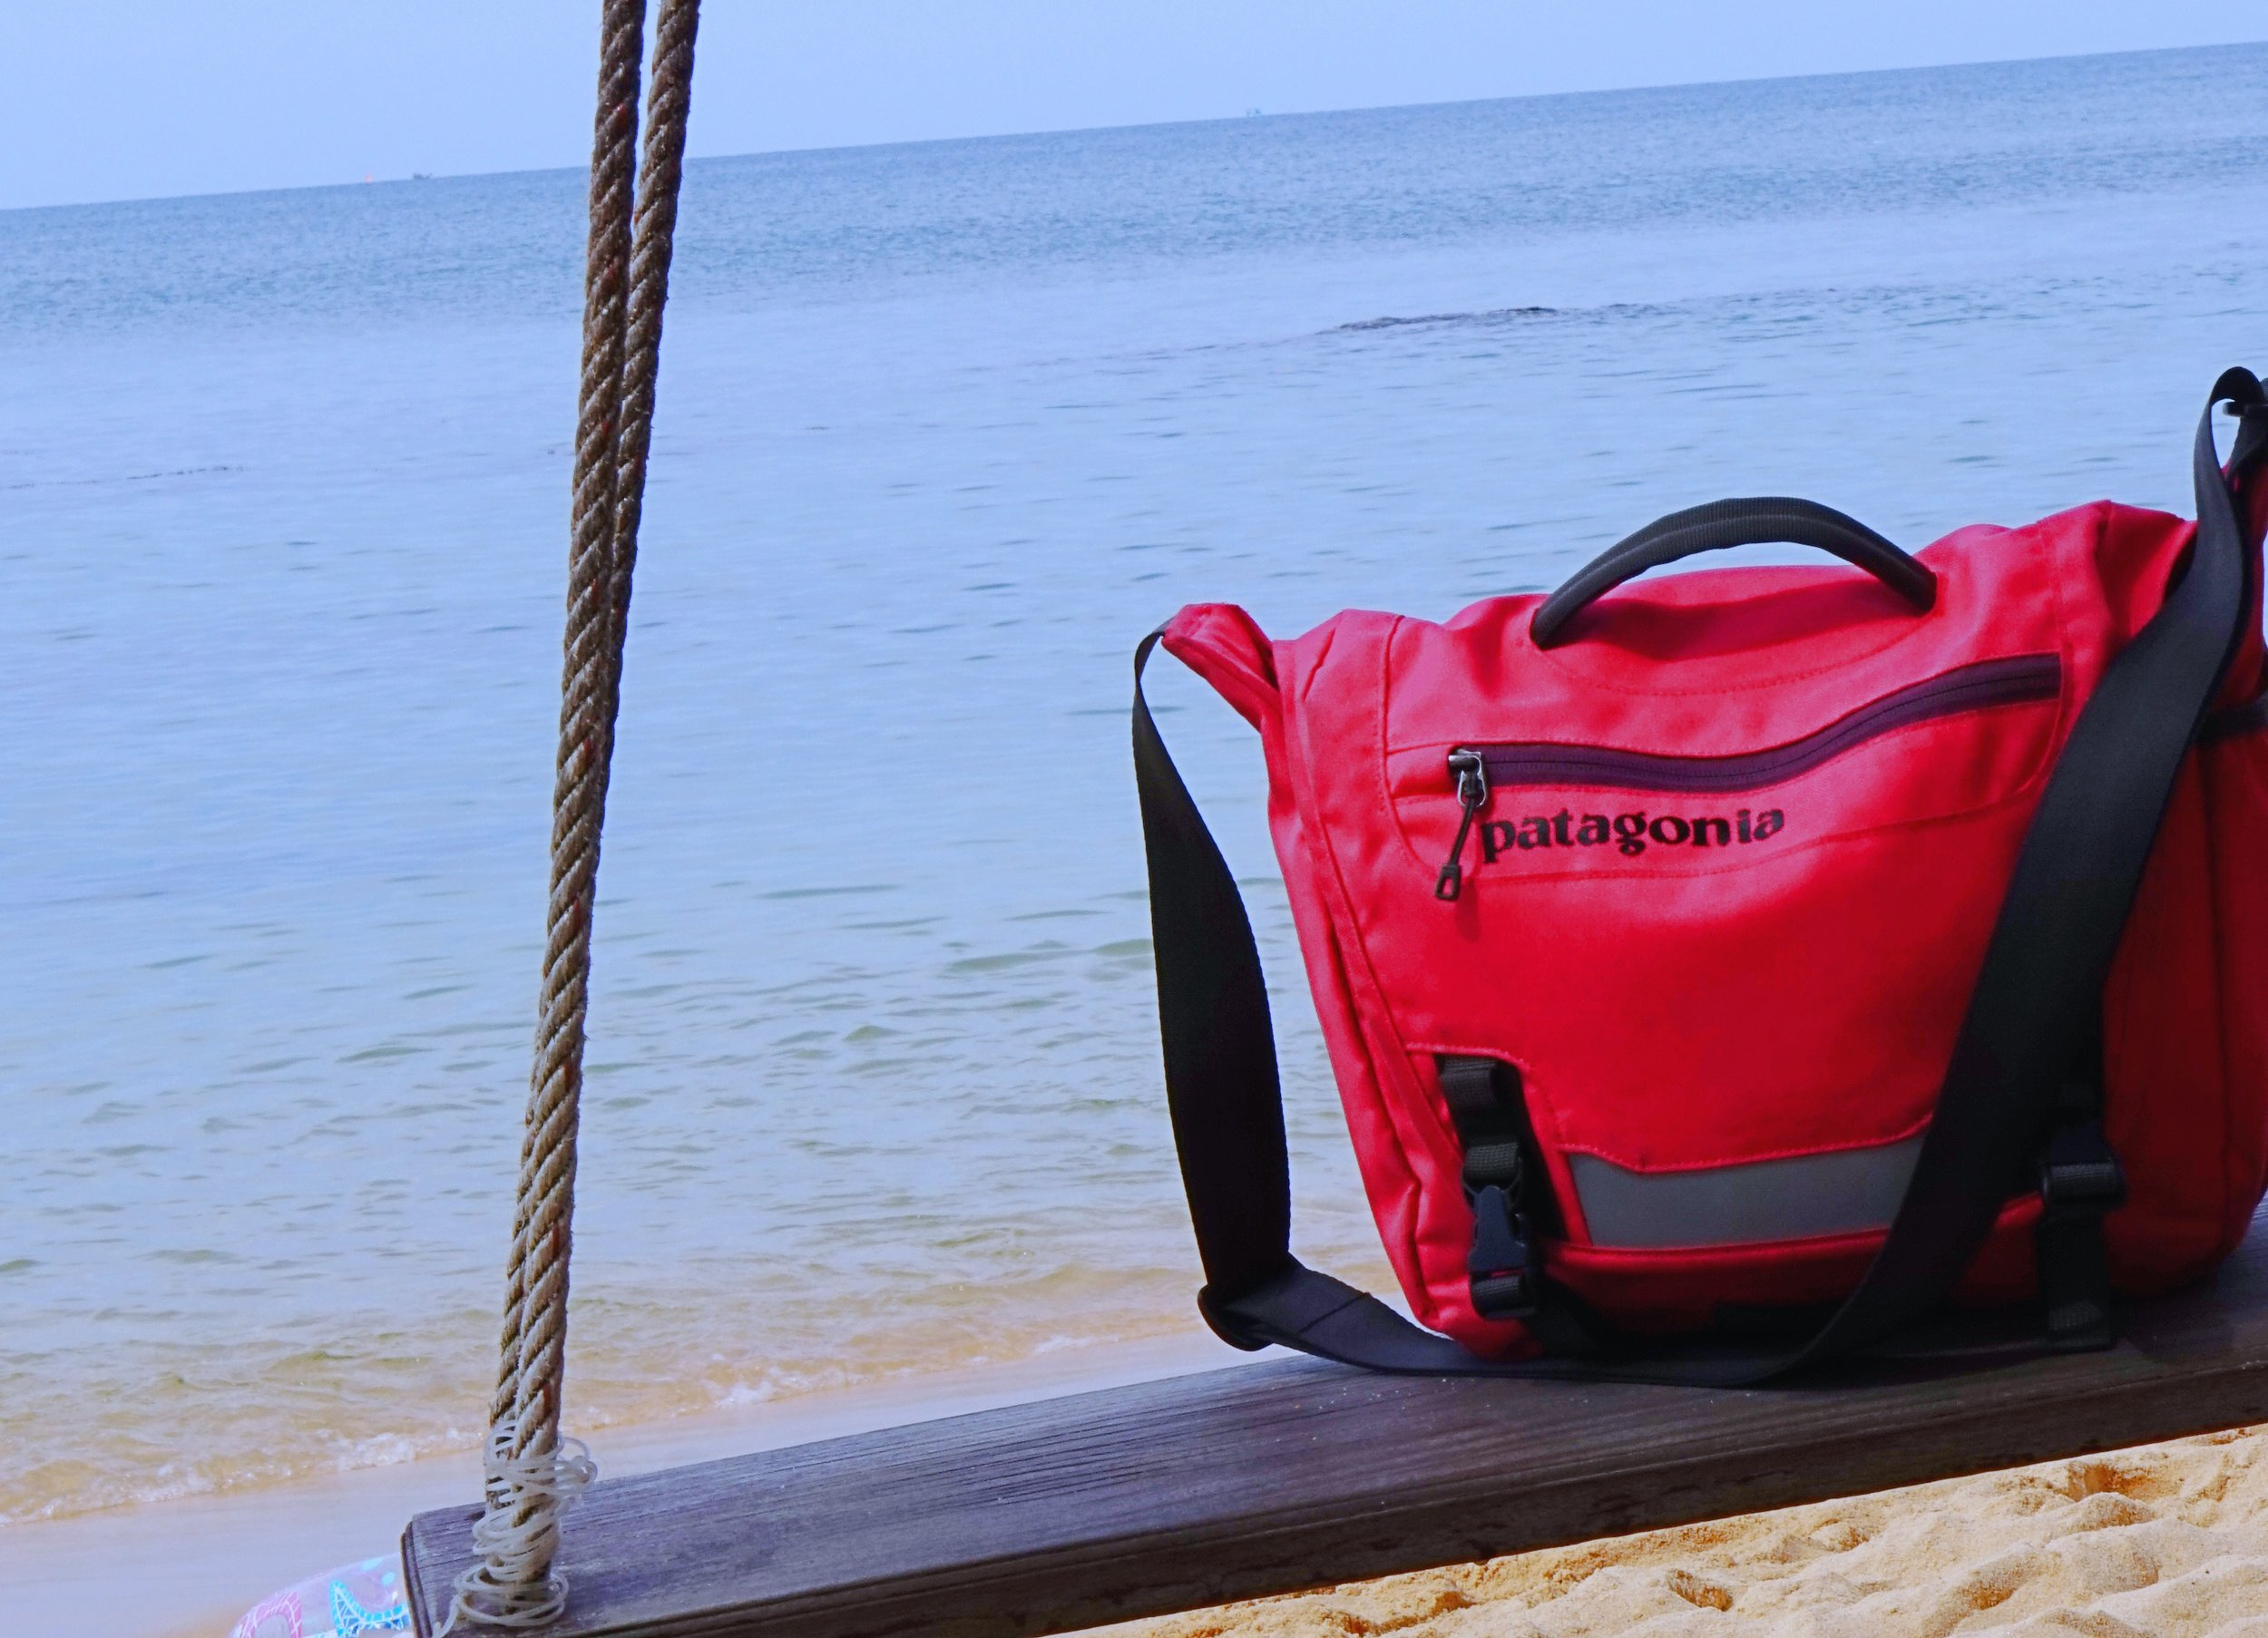 Thrifted Patagucci chillin in PhuQuoc beach, Vietnam